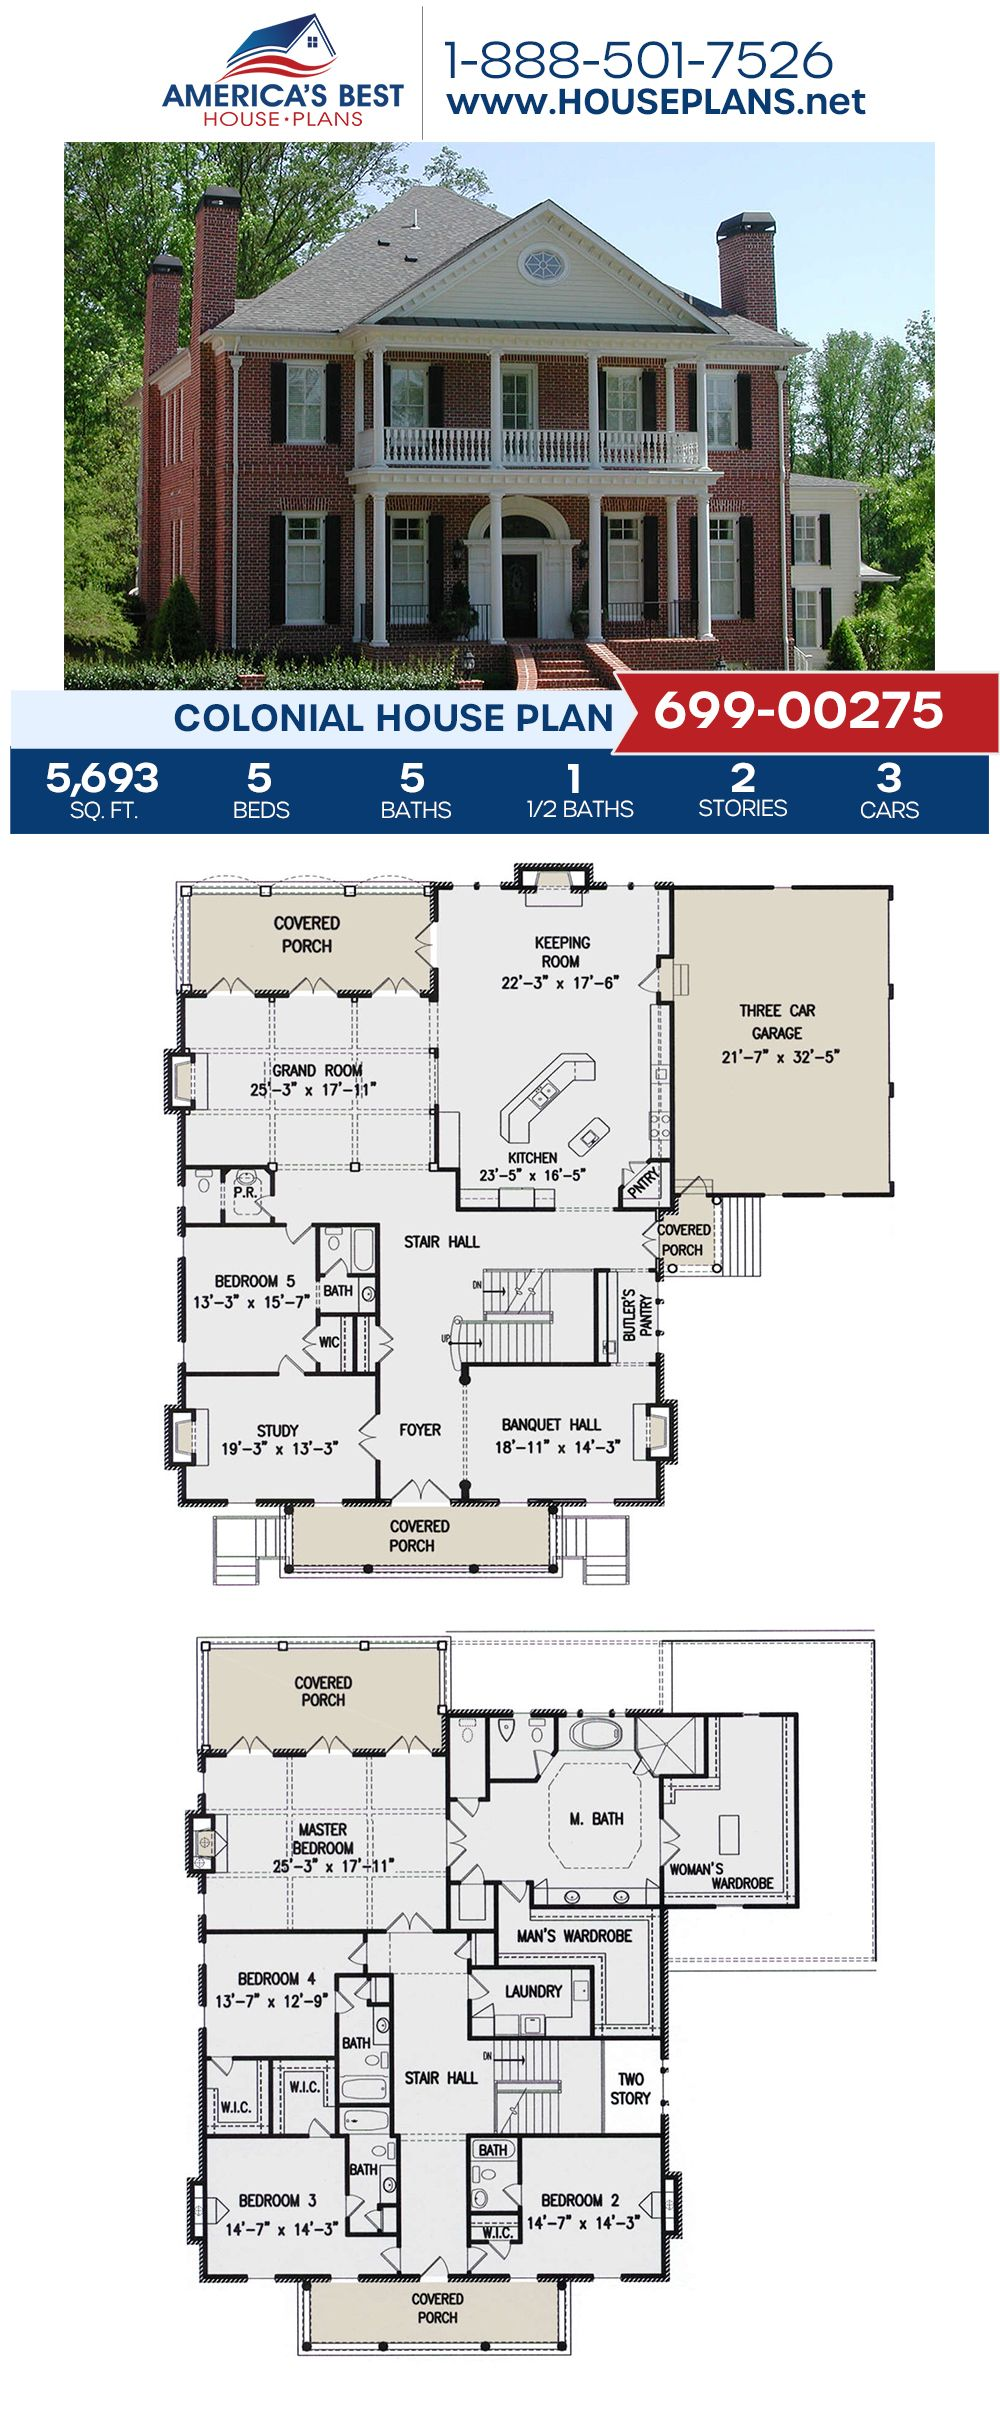 House Plan 699 00275 Colonial Plan 5 693 Square Feet 5 Bedrooms 5 5 Bathrooms Colonial House Plans Farmhouse Floor Plans Porch House Plans